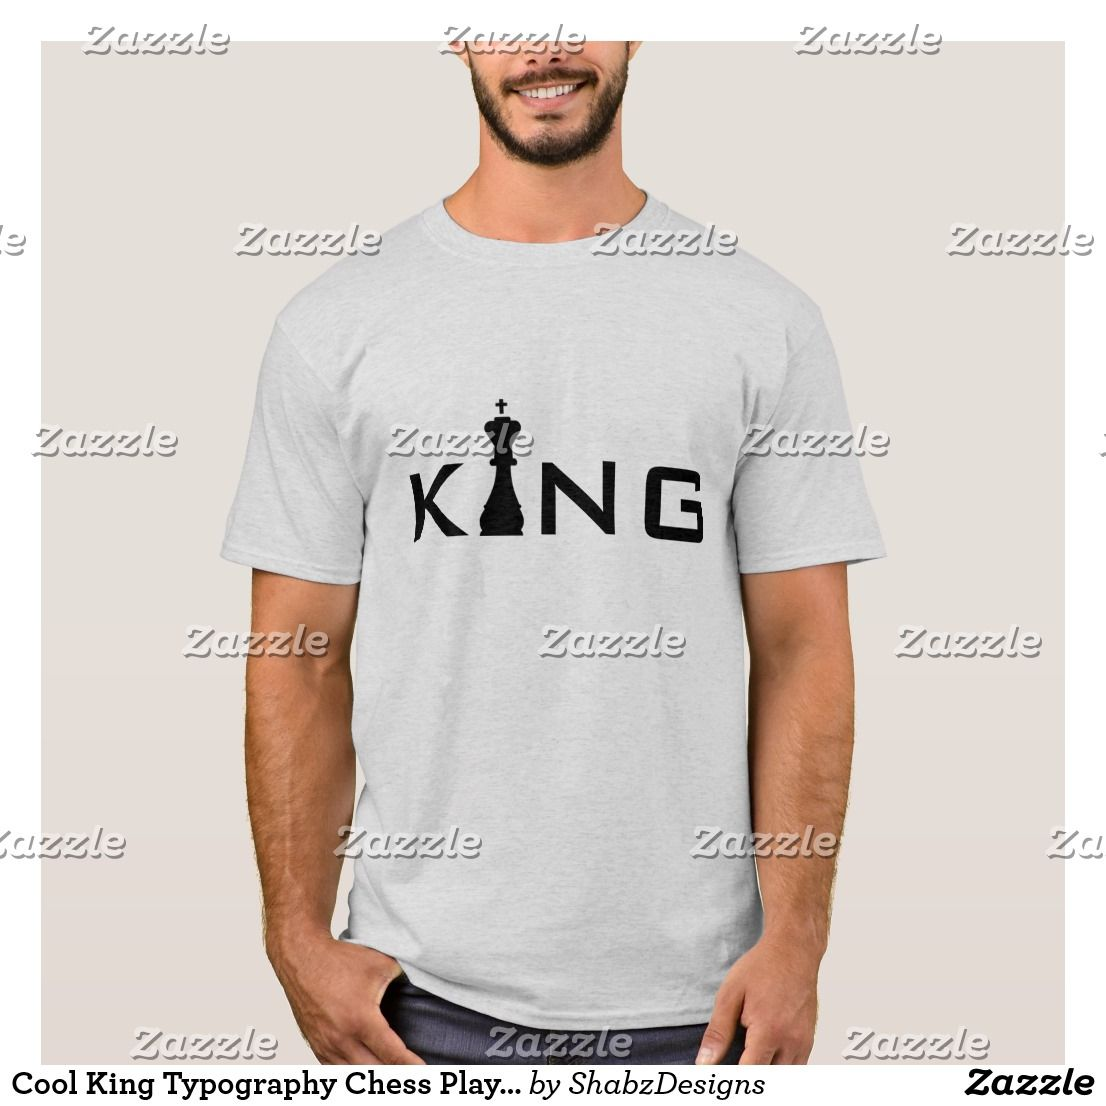 fe335279ec44fe Cool King Typography Chess Player T-Shirt | Zazzle.com in 2019 | Buy ...